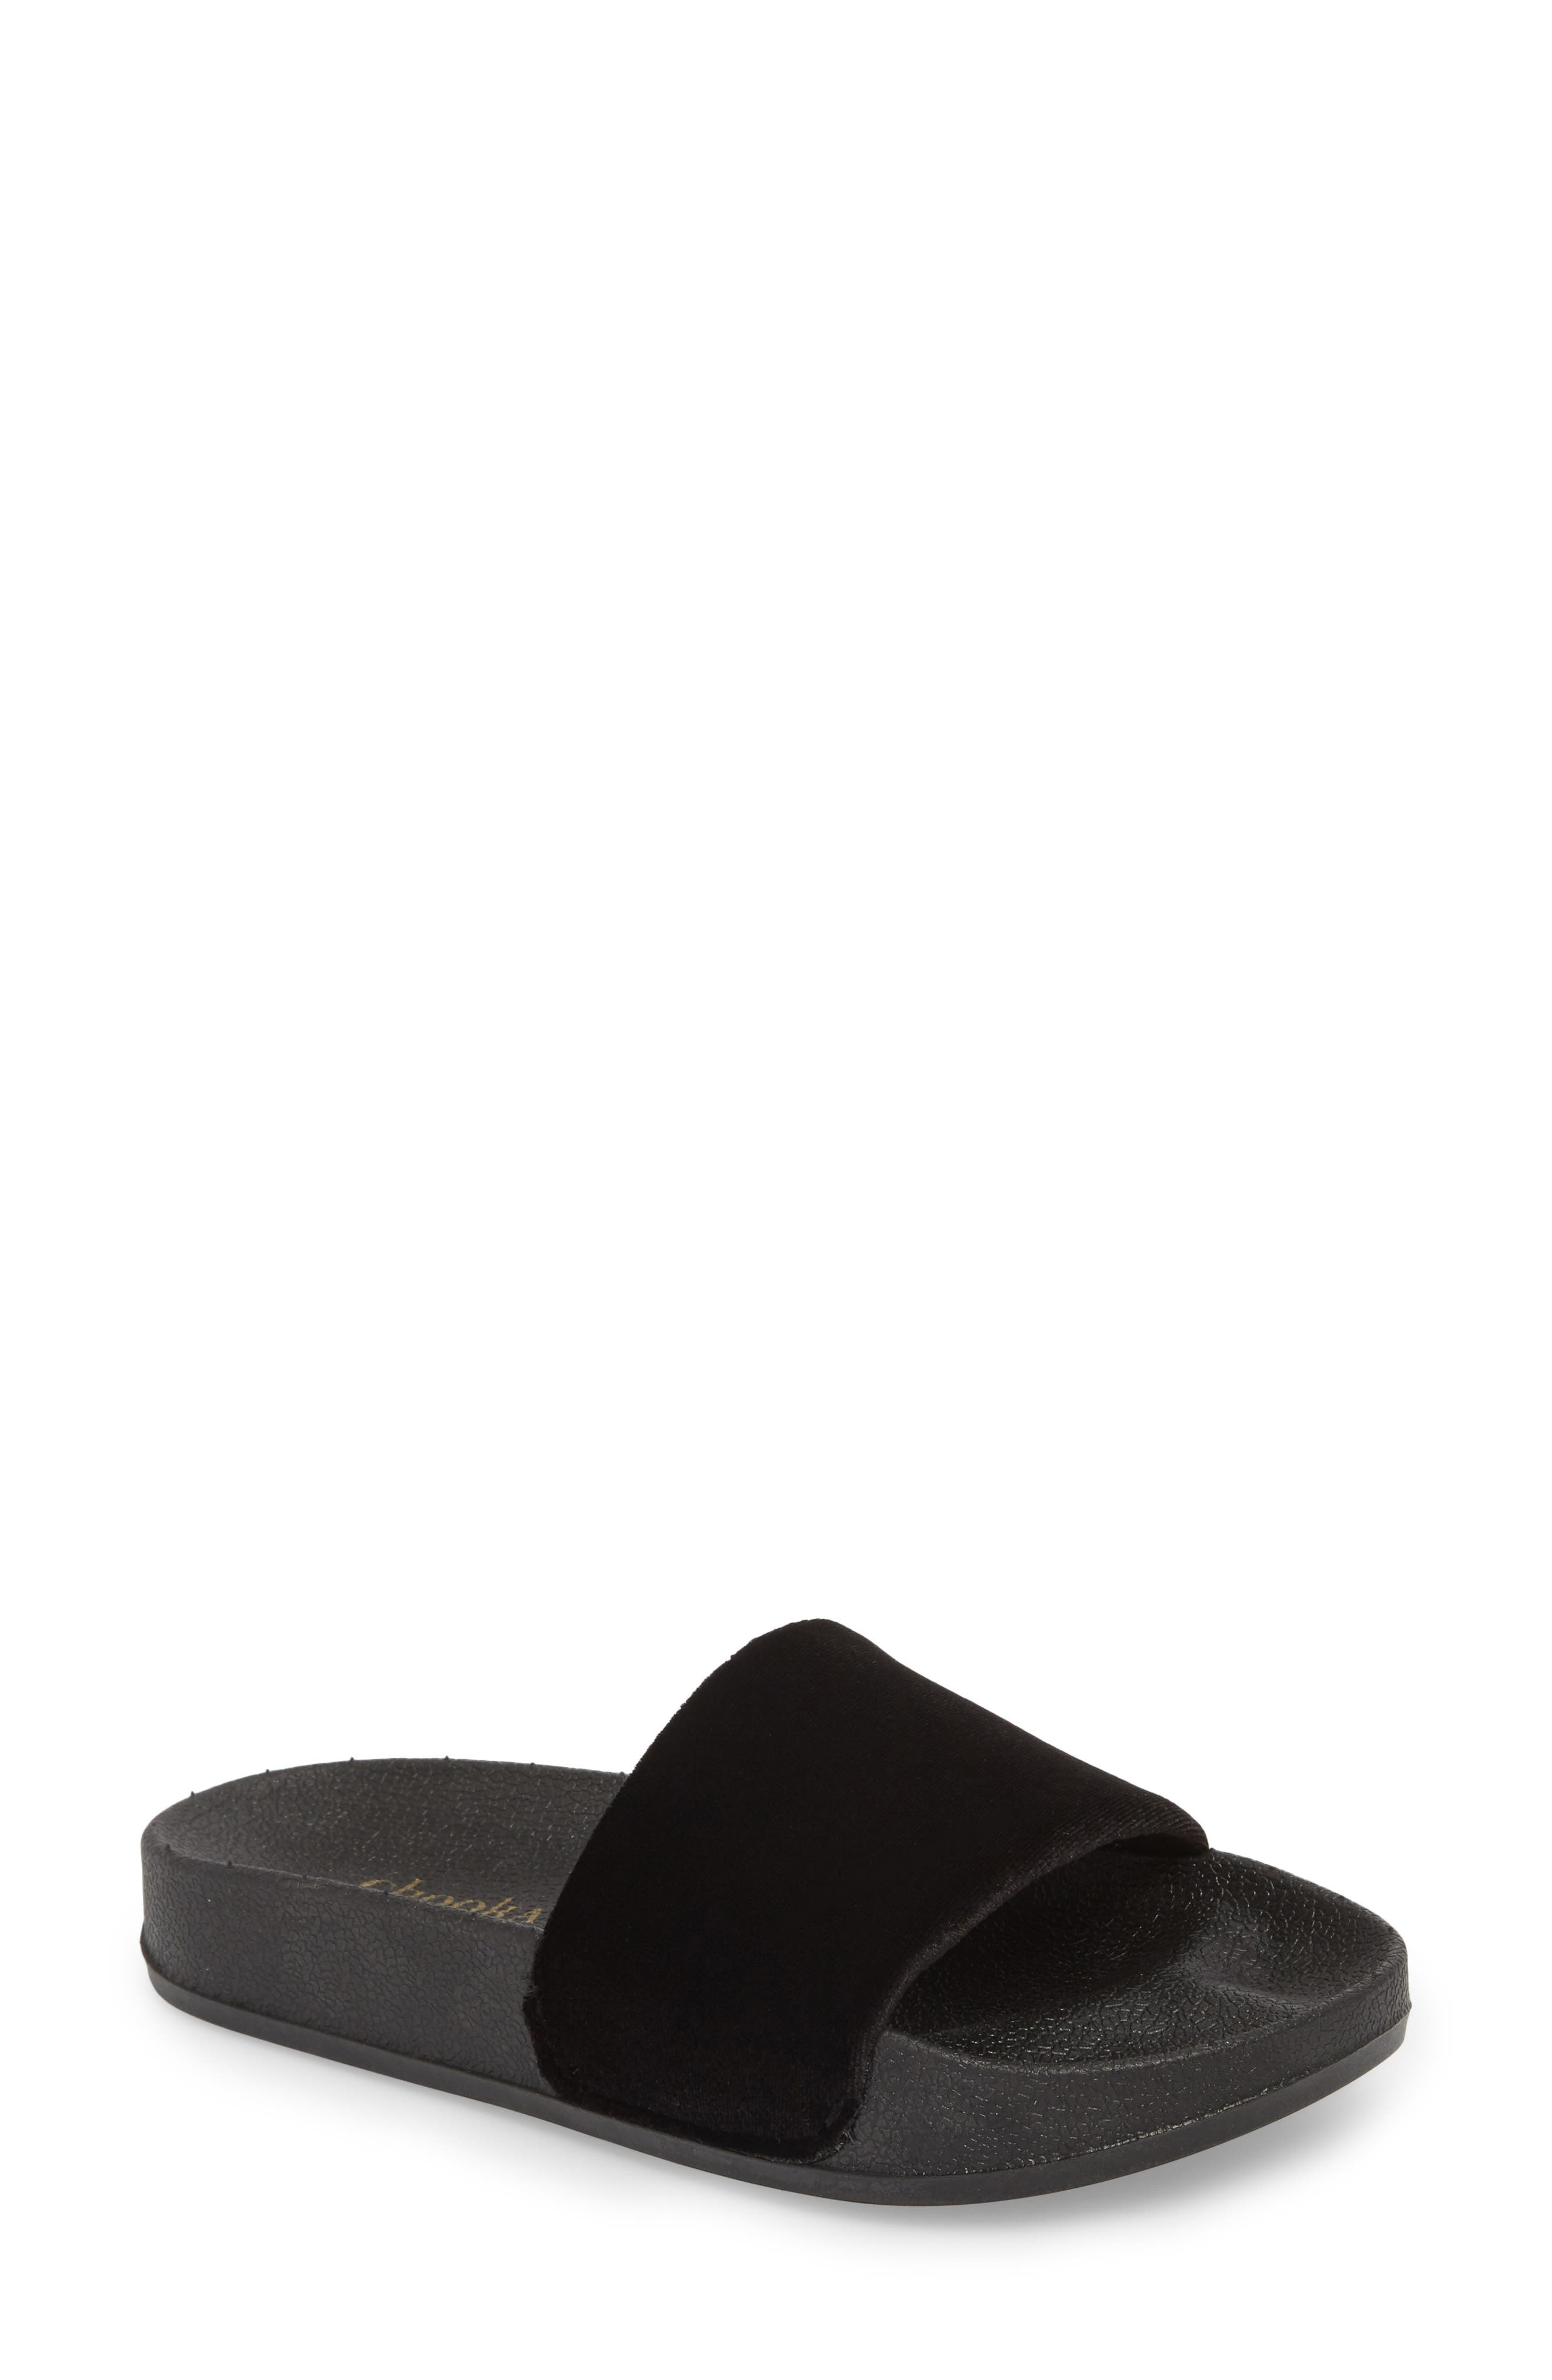 Slide Sandal,                             Main thumbnail 1, color,                             BLACK